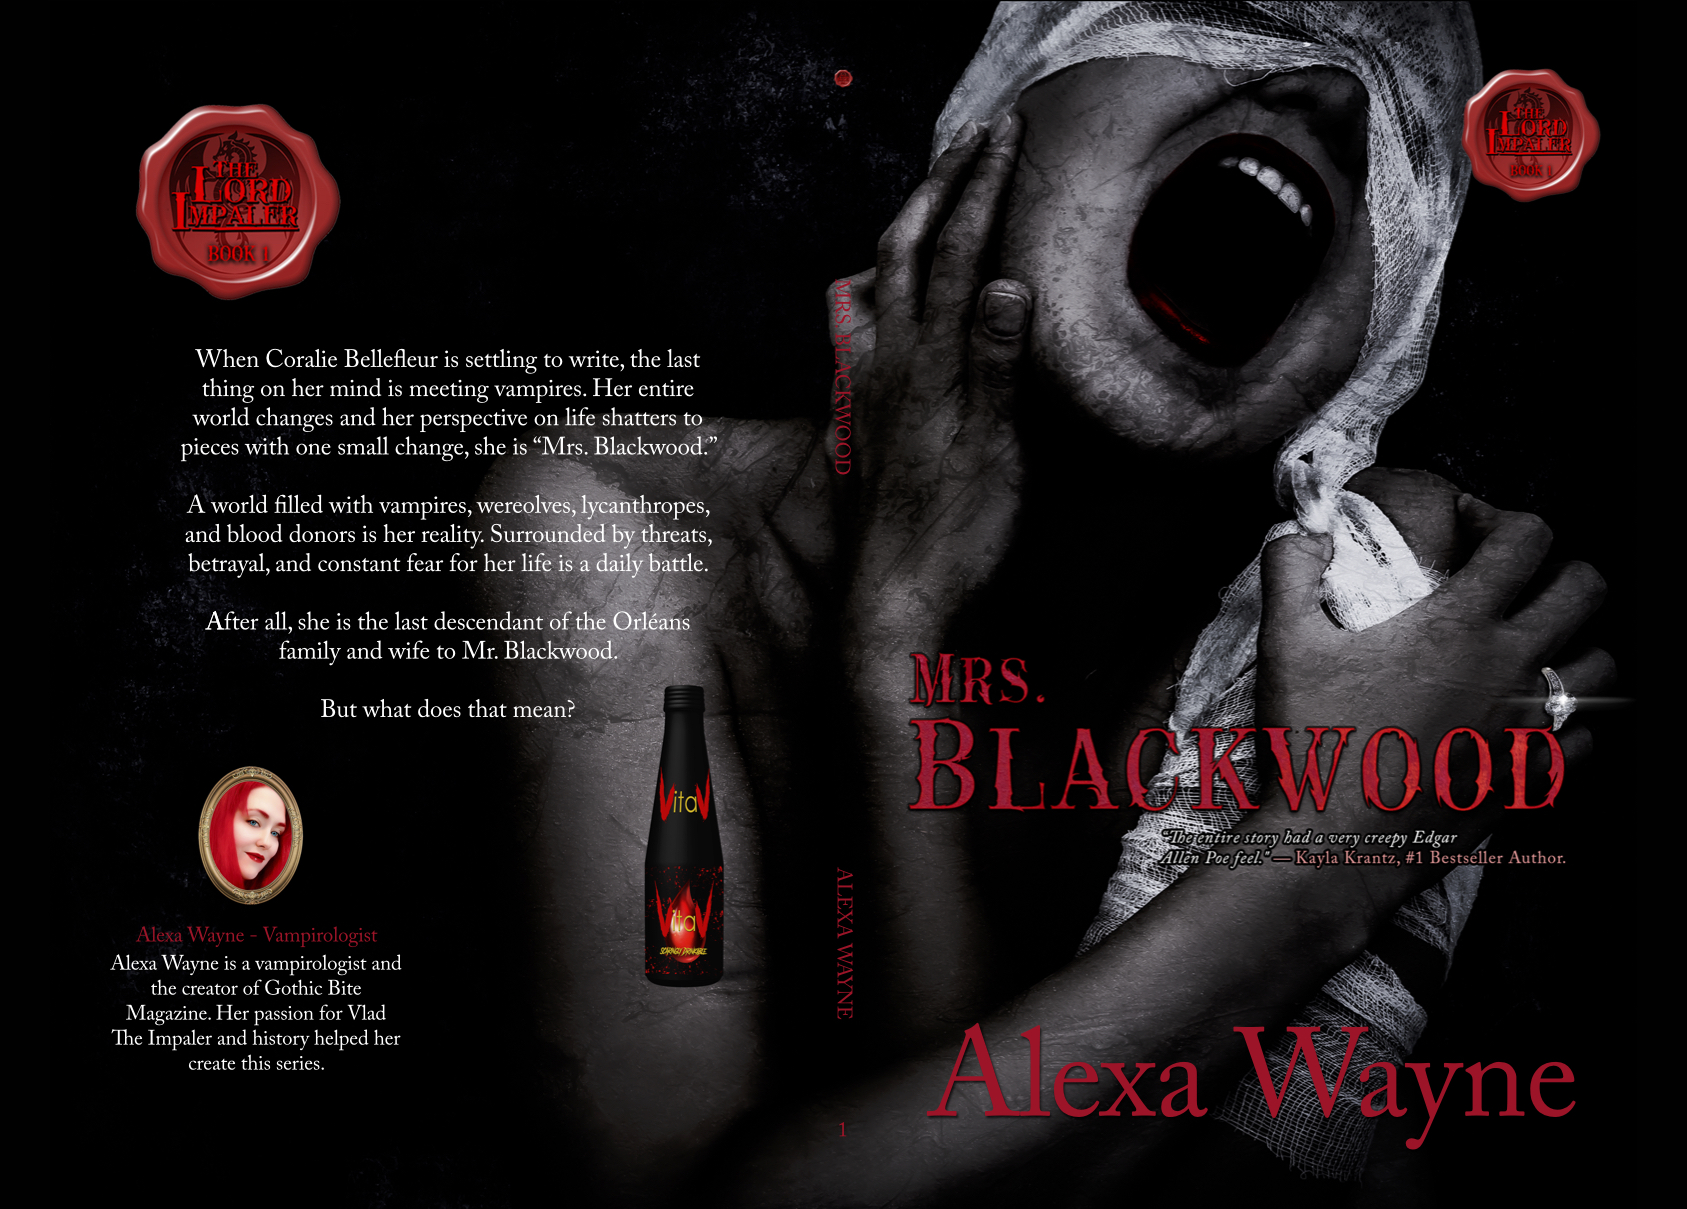 The Lord Impaler Series - Book 1 - Mrs. Blackwood by Alexa Wayne aka Arielle Lyon